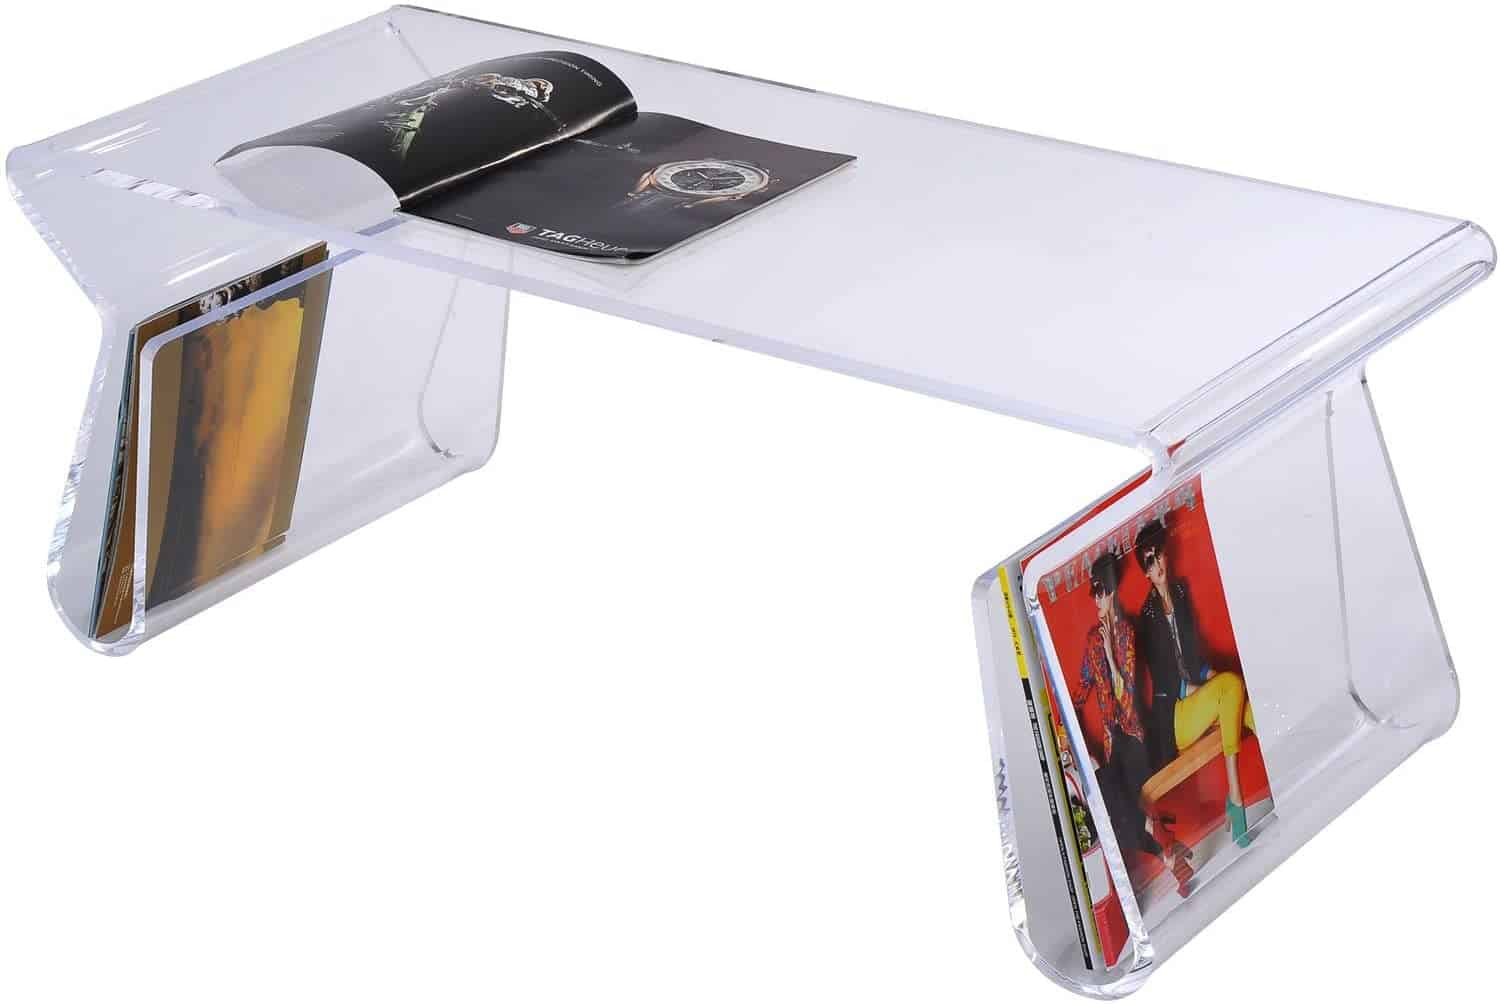 Acrylic rectengular table with bended legs that act like magazines storage